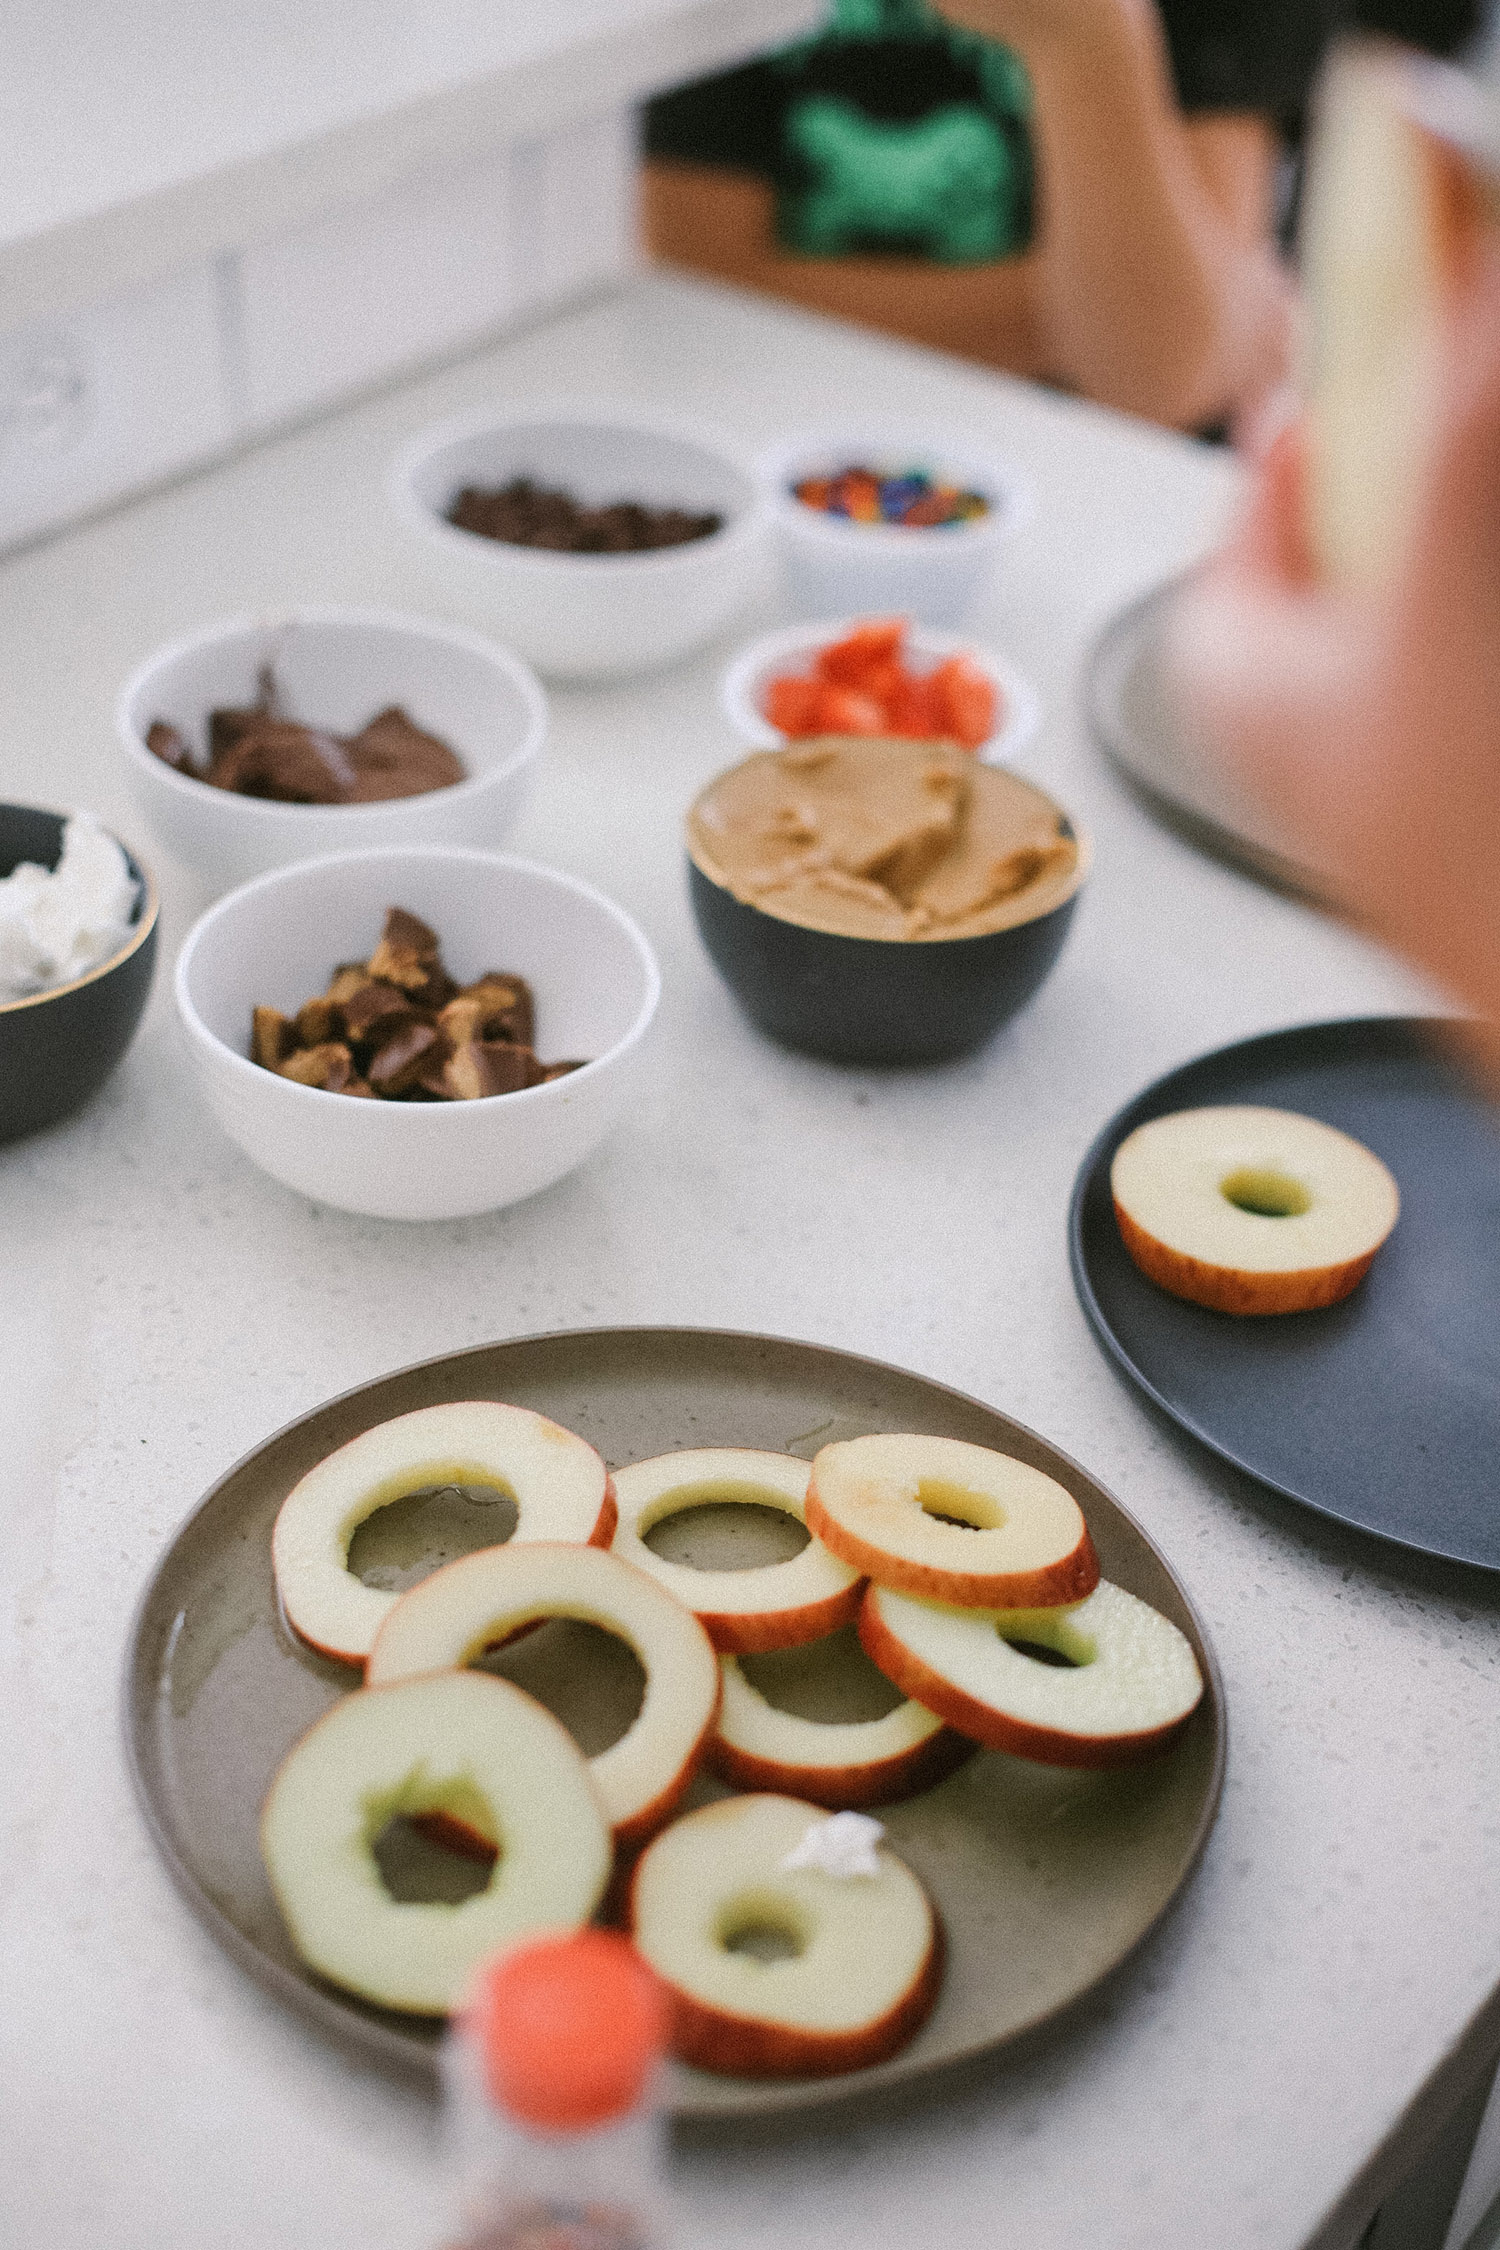 Easy snack ideas for a healthy sweet snacktivity for kids! Apple Donut fun recipe for kids from top Florida blogger Tabitha Blue of Fresh Mommy Blog | Apple Donuts by popular Florida motherhood blog, Fresh Mommy Blog: image of apple slices on a plate next to bowls filled with various toppings.